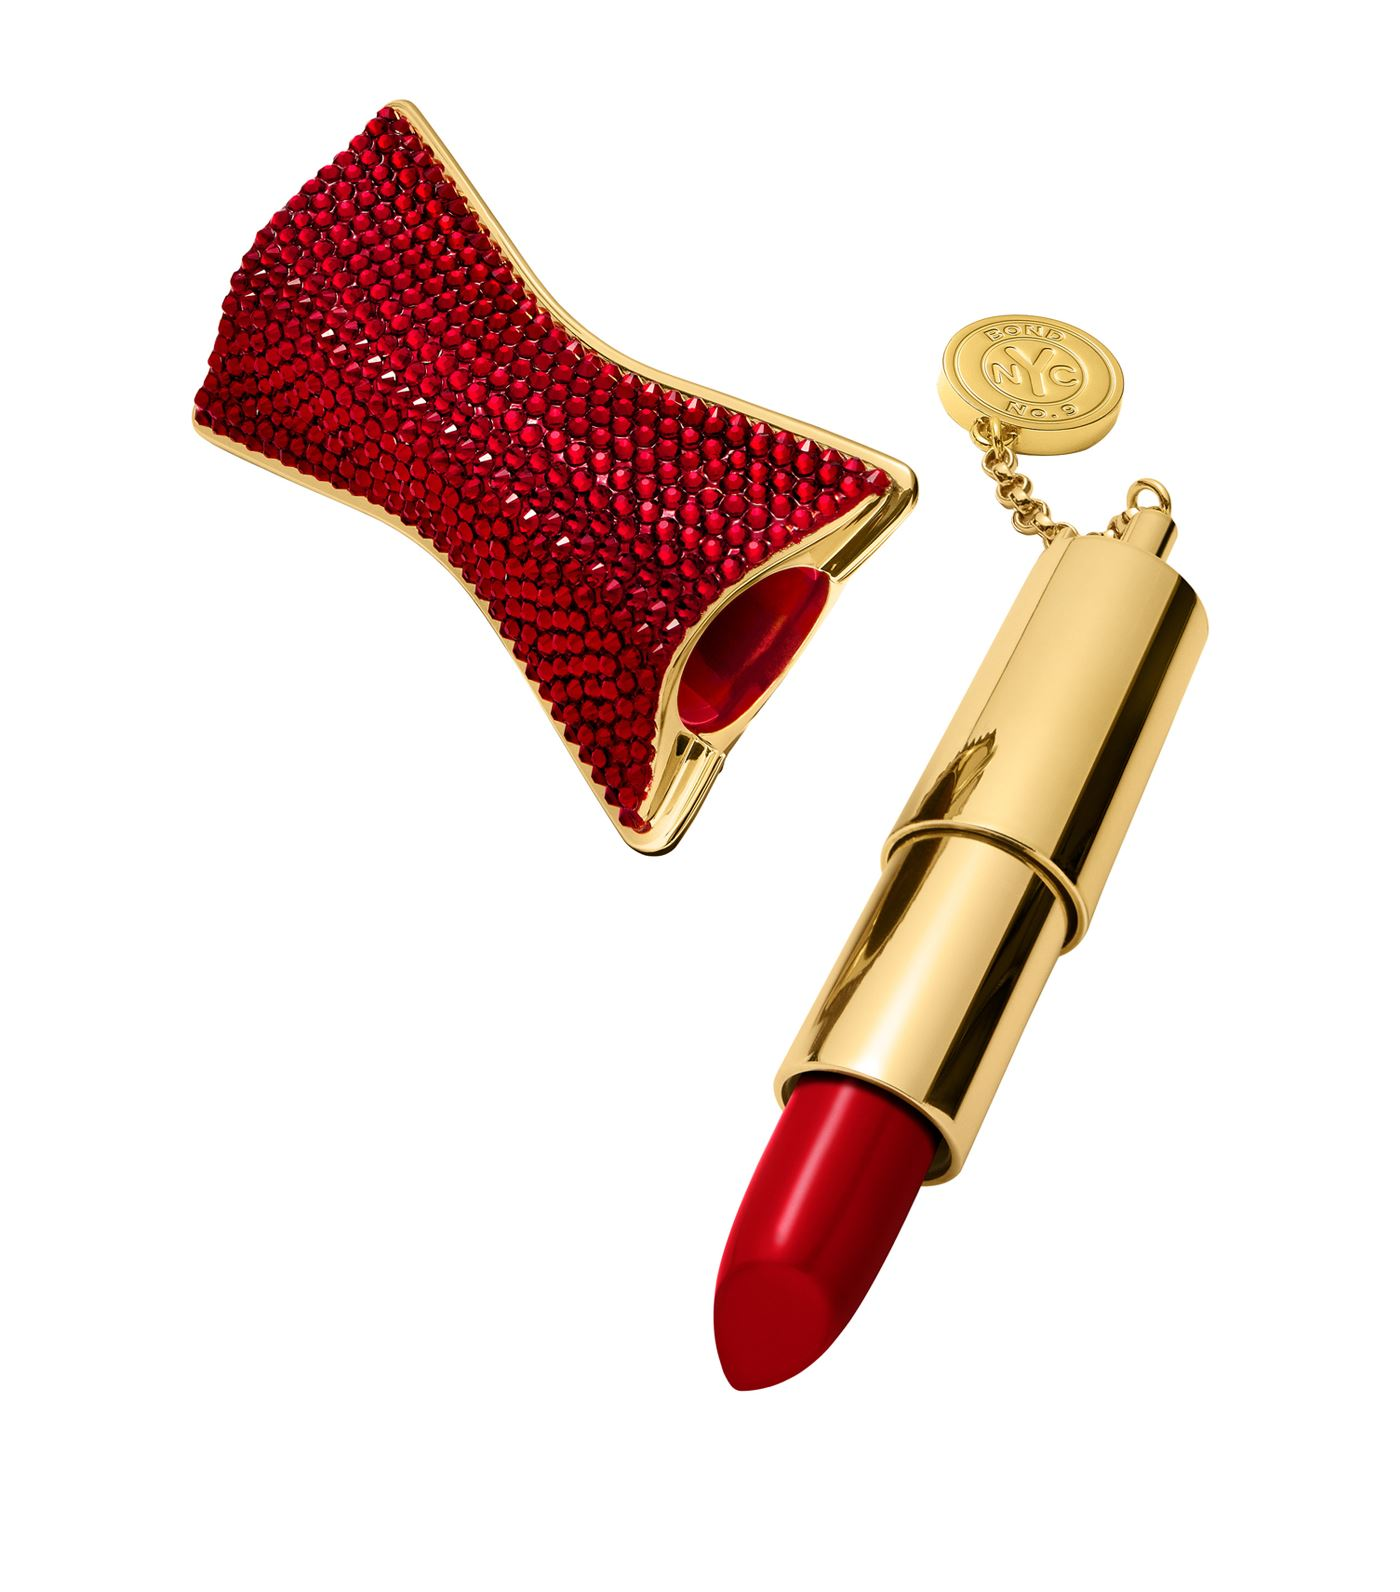 Bond-No-9-Chelsea-Swarovski-Lipstick-Harrods-Mosnar-Communications